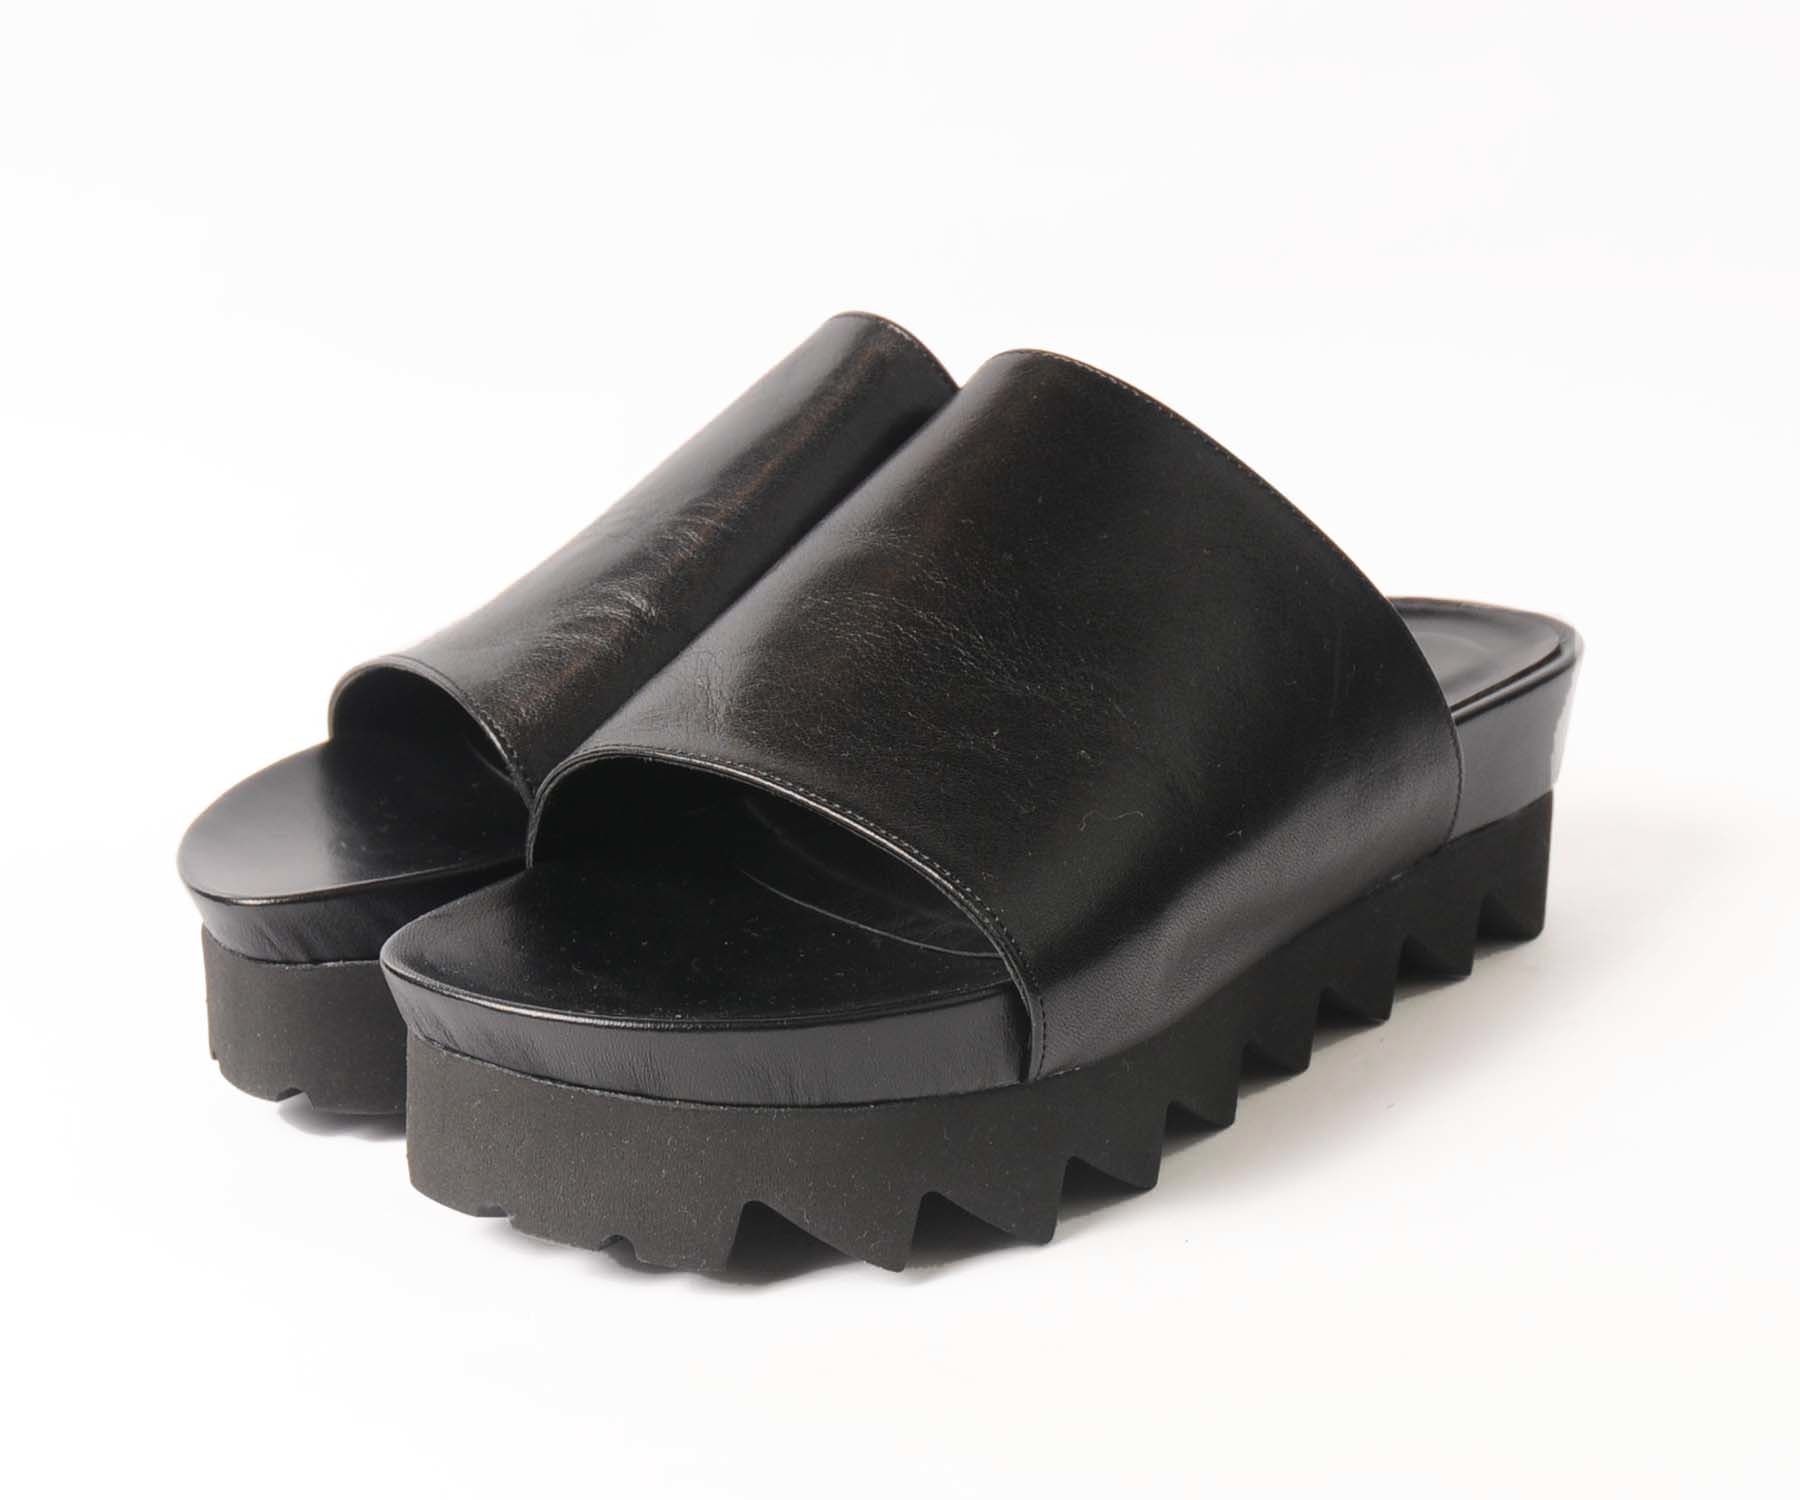 hs18SS-IRS03 LEATHER 2SOLE SANDAL B